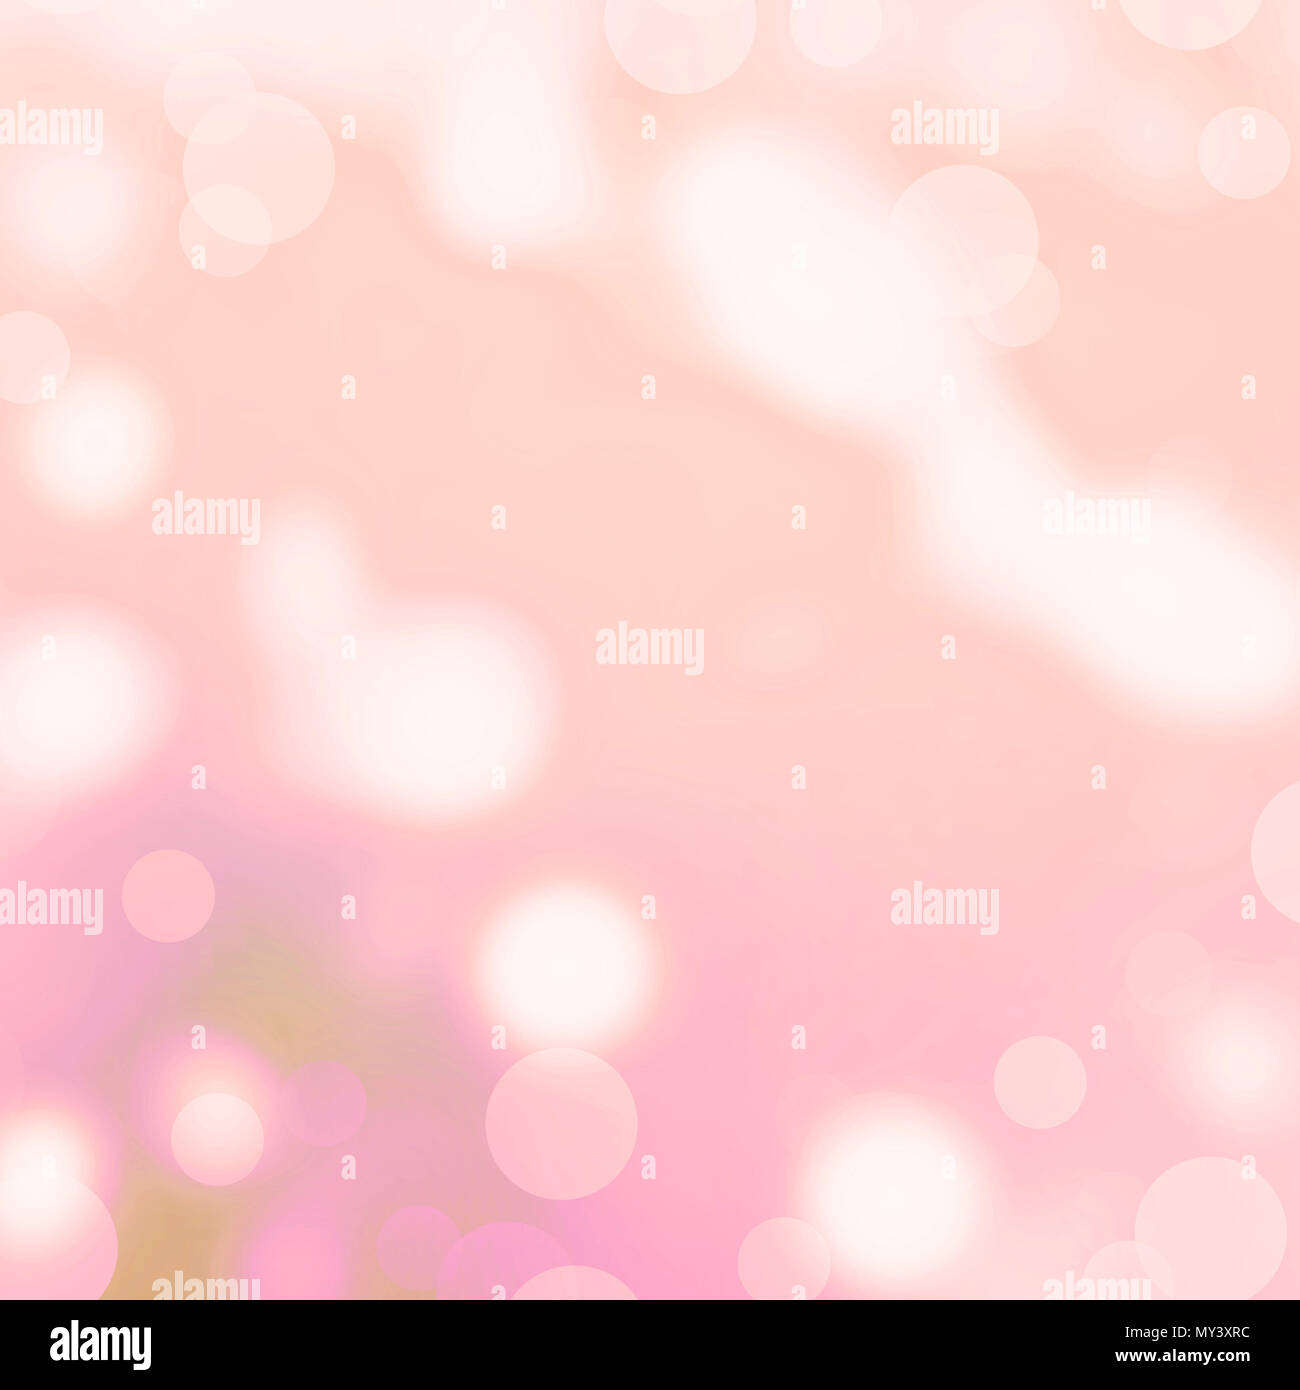 Rough Texture Background: Love Purple Backdrop Valentines Day Stock Photos & Love